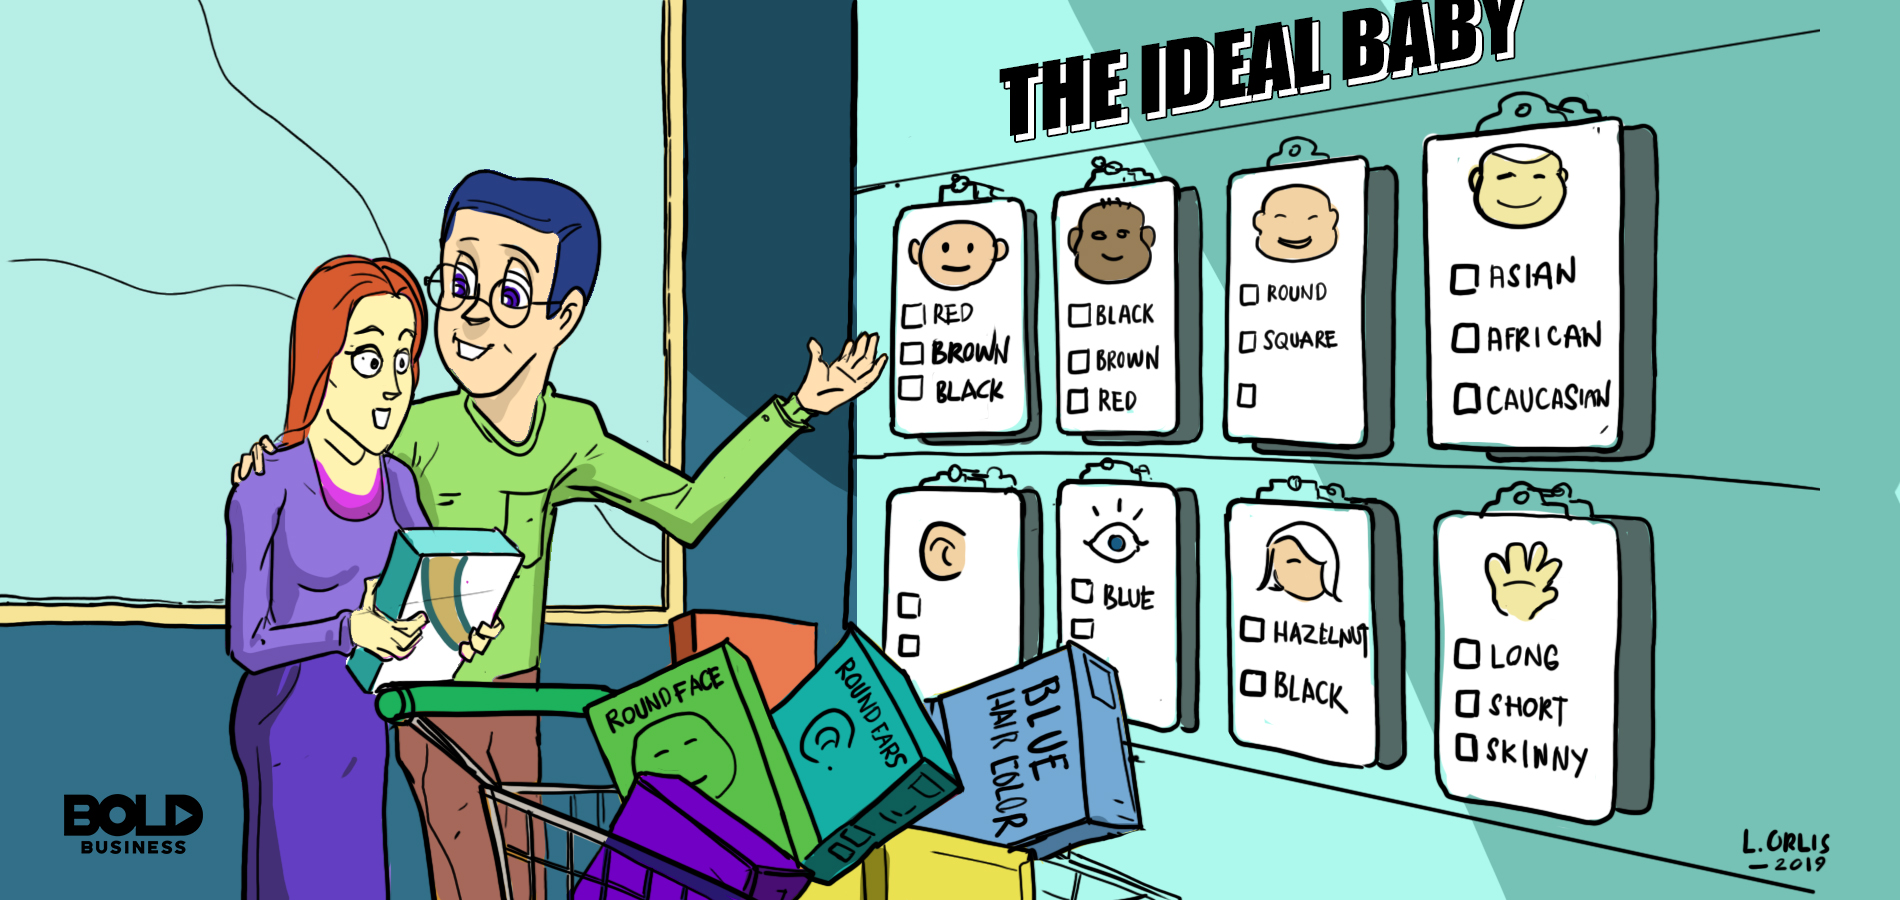 cartoon of a couple shopping for traits for The Ideal Baby posted on a wall for genetic engineering or modifying their baby